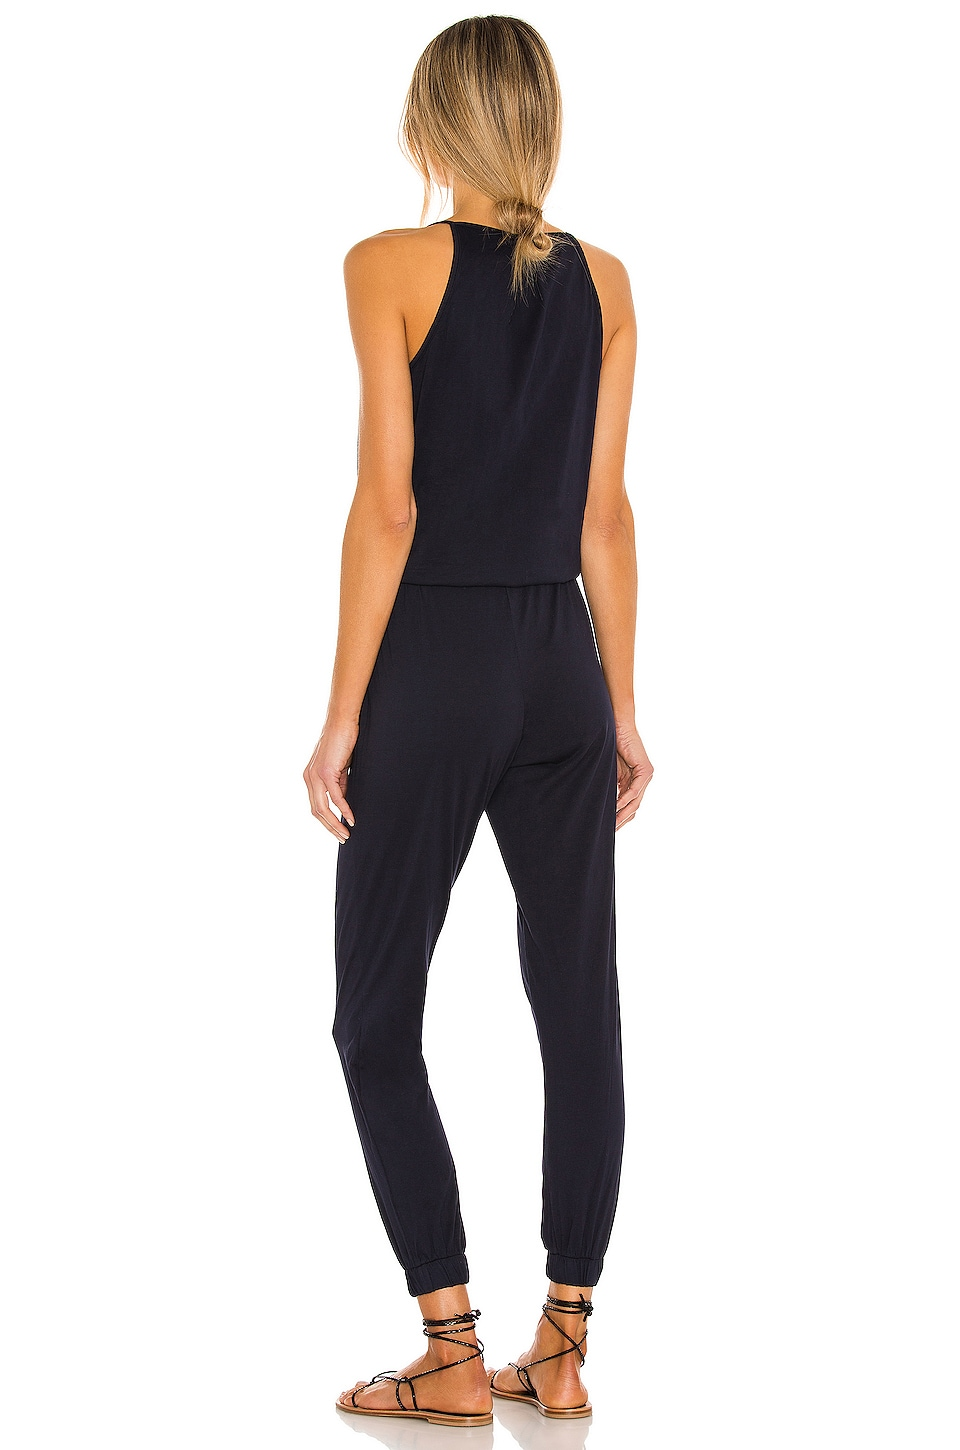 Supreme Jersey Tied Waist V Neck Jumpsuit, view 3, click to view large image.